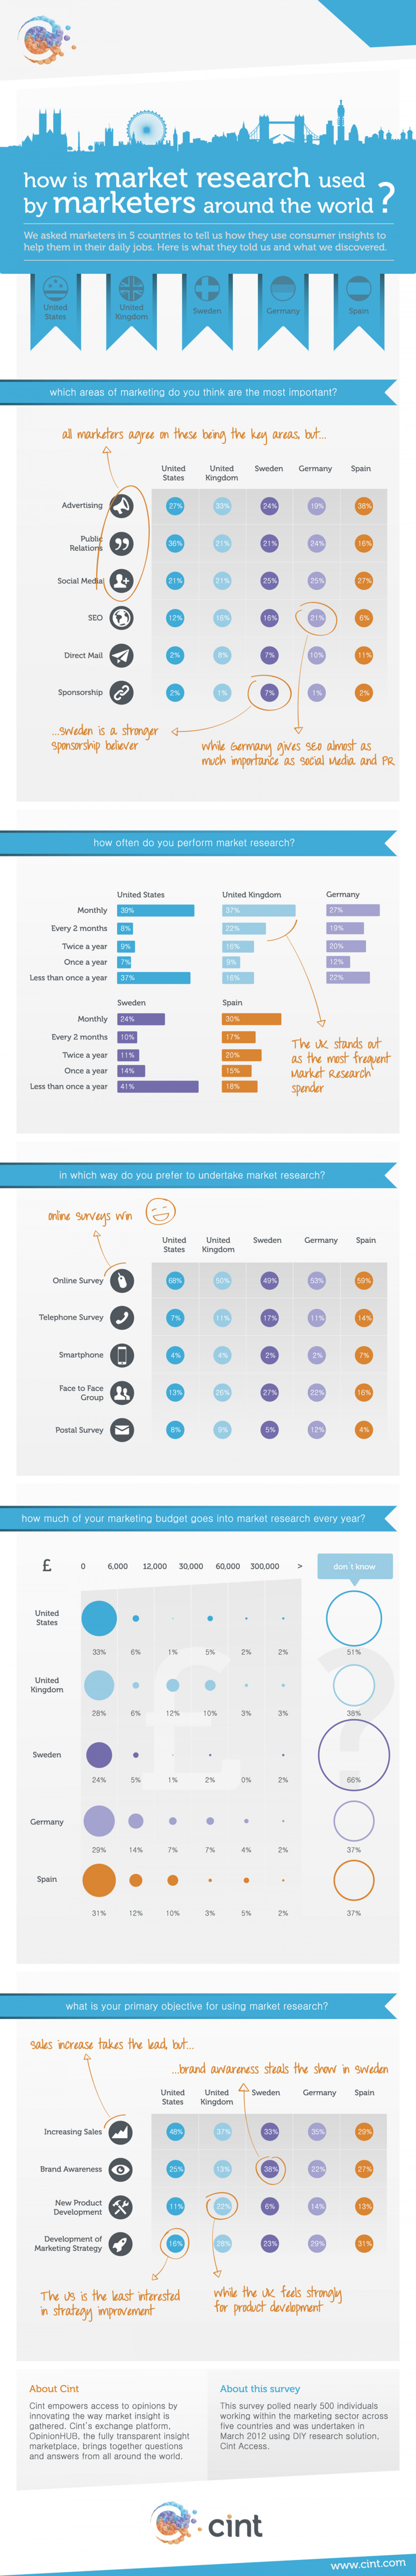 how is market research used by marketers around the world? Infographic